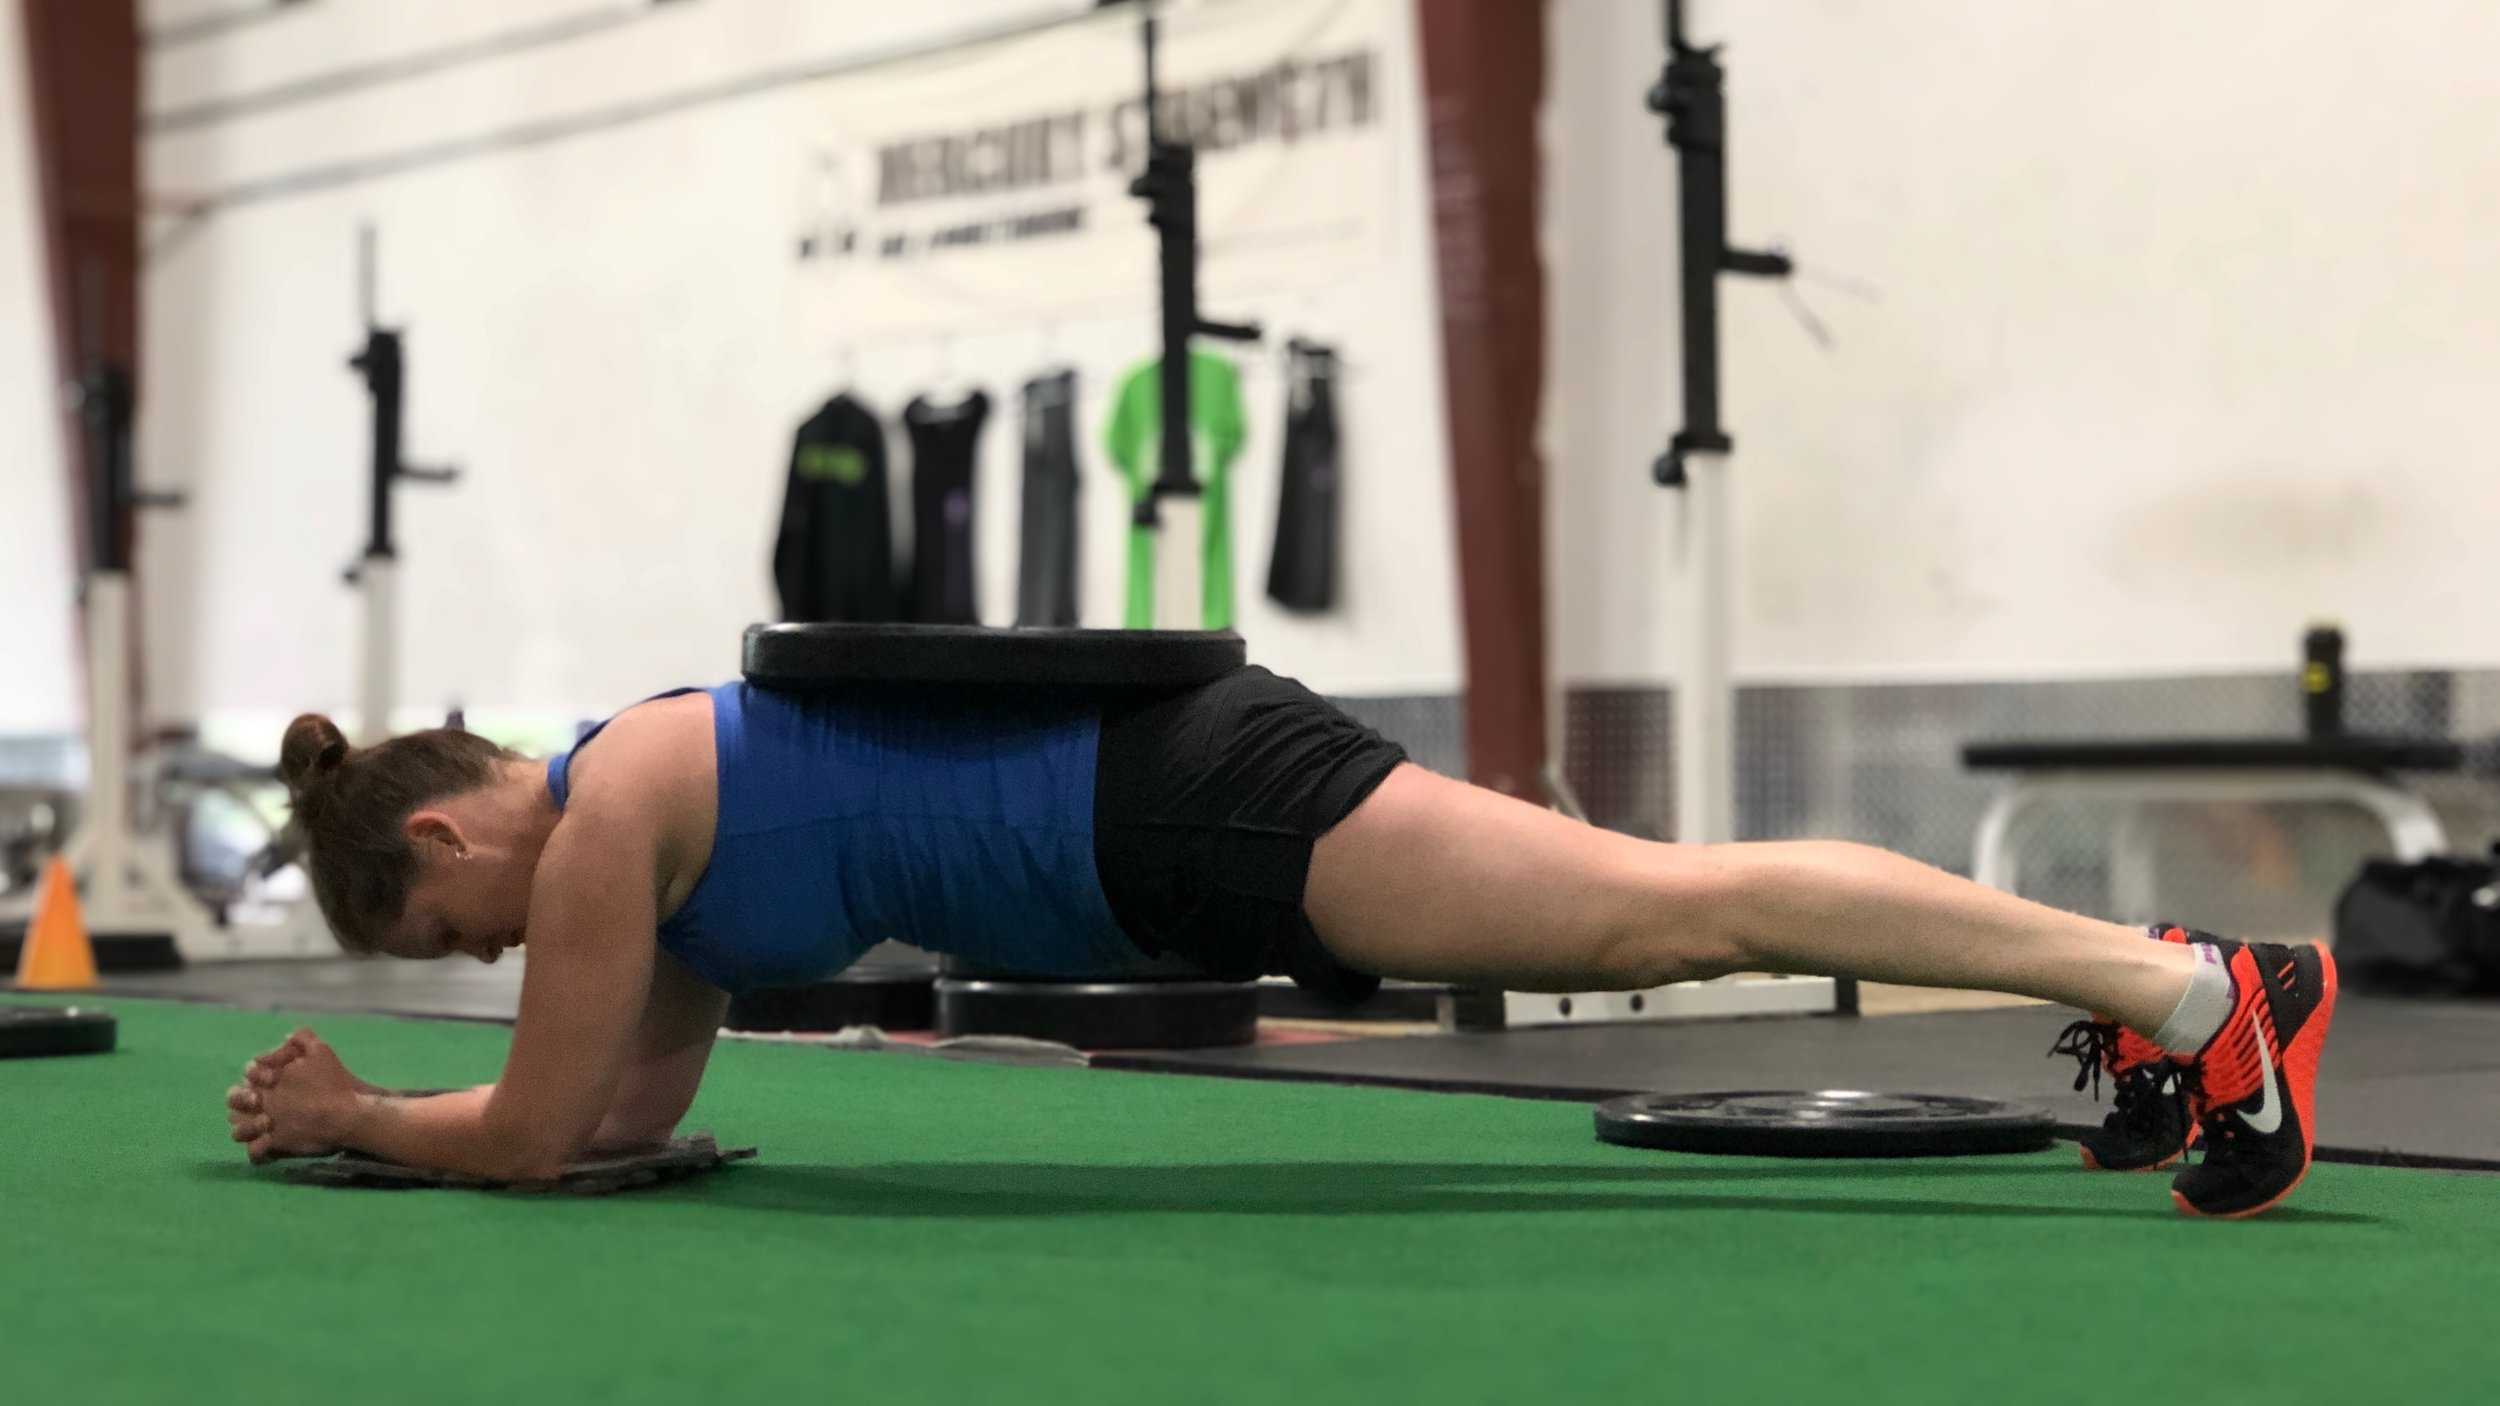 Cari holding a weighted plank